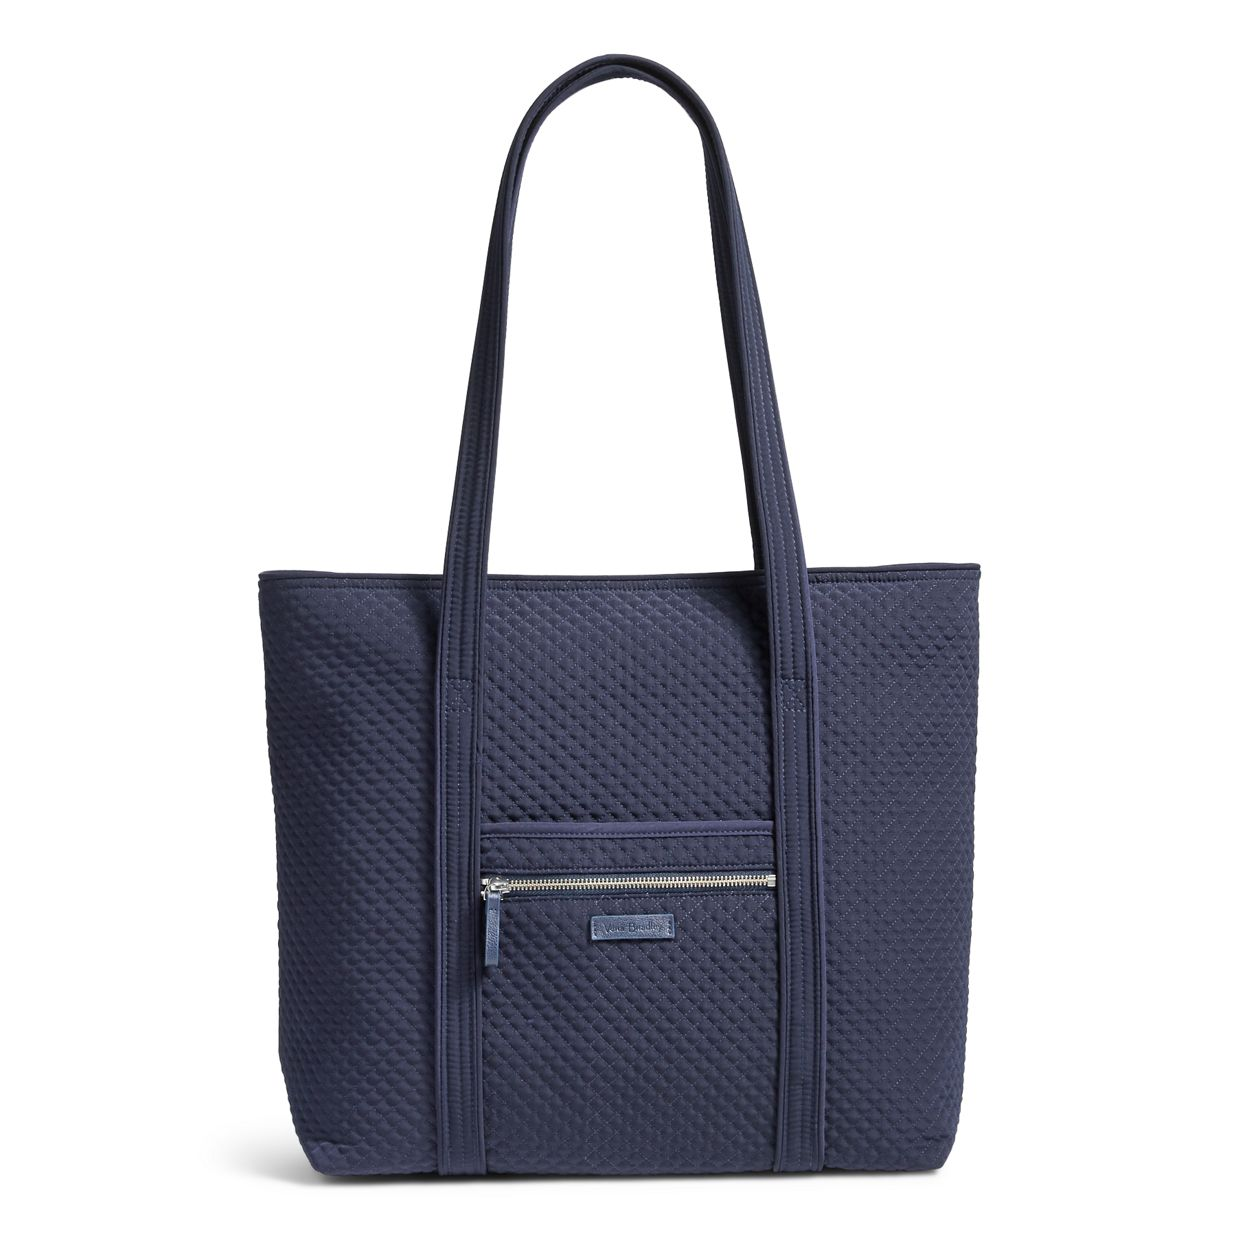 Image of Iconic Vera Tote in Classic Navy fd2acd585e905